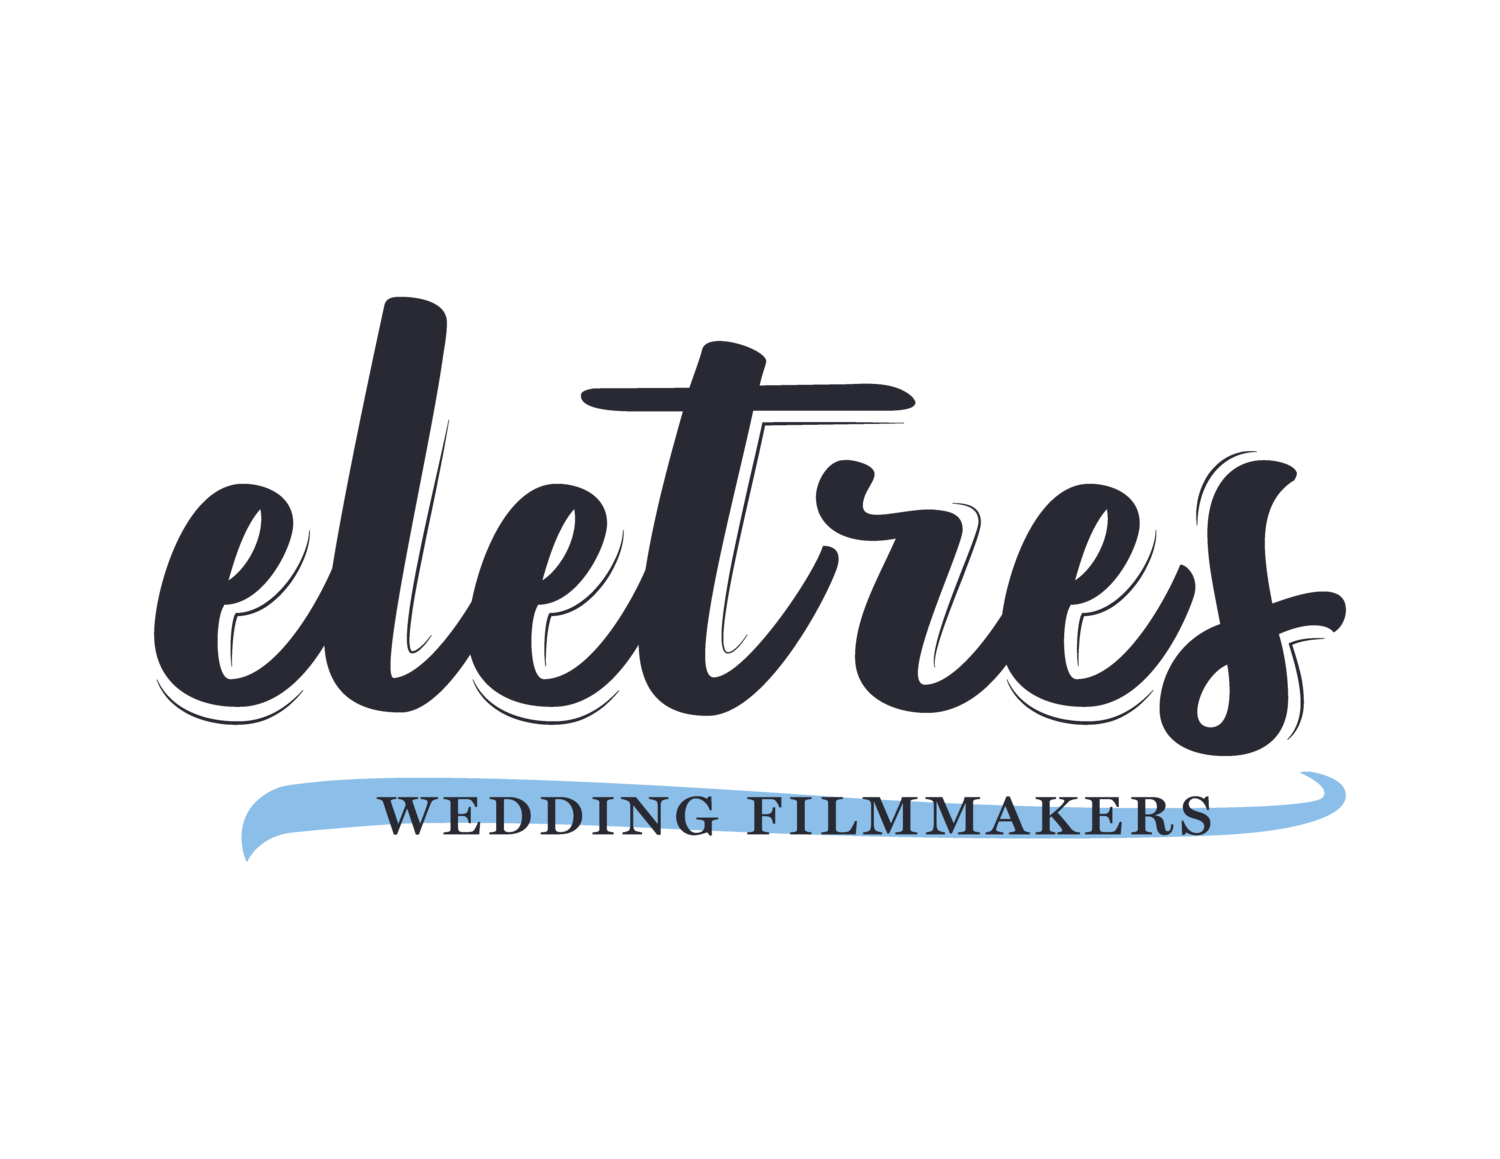 eletres wedding filmmakers